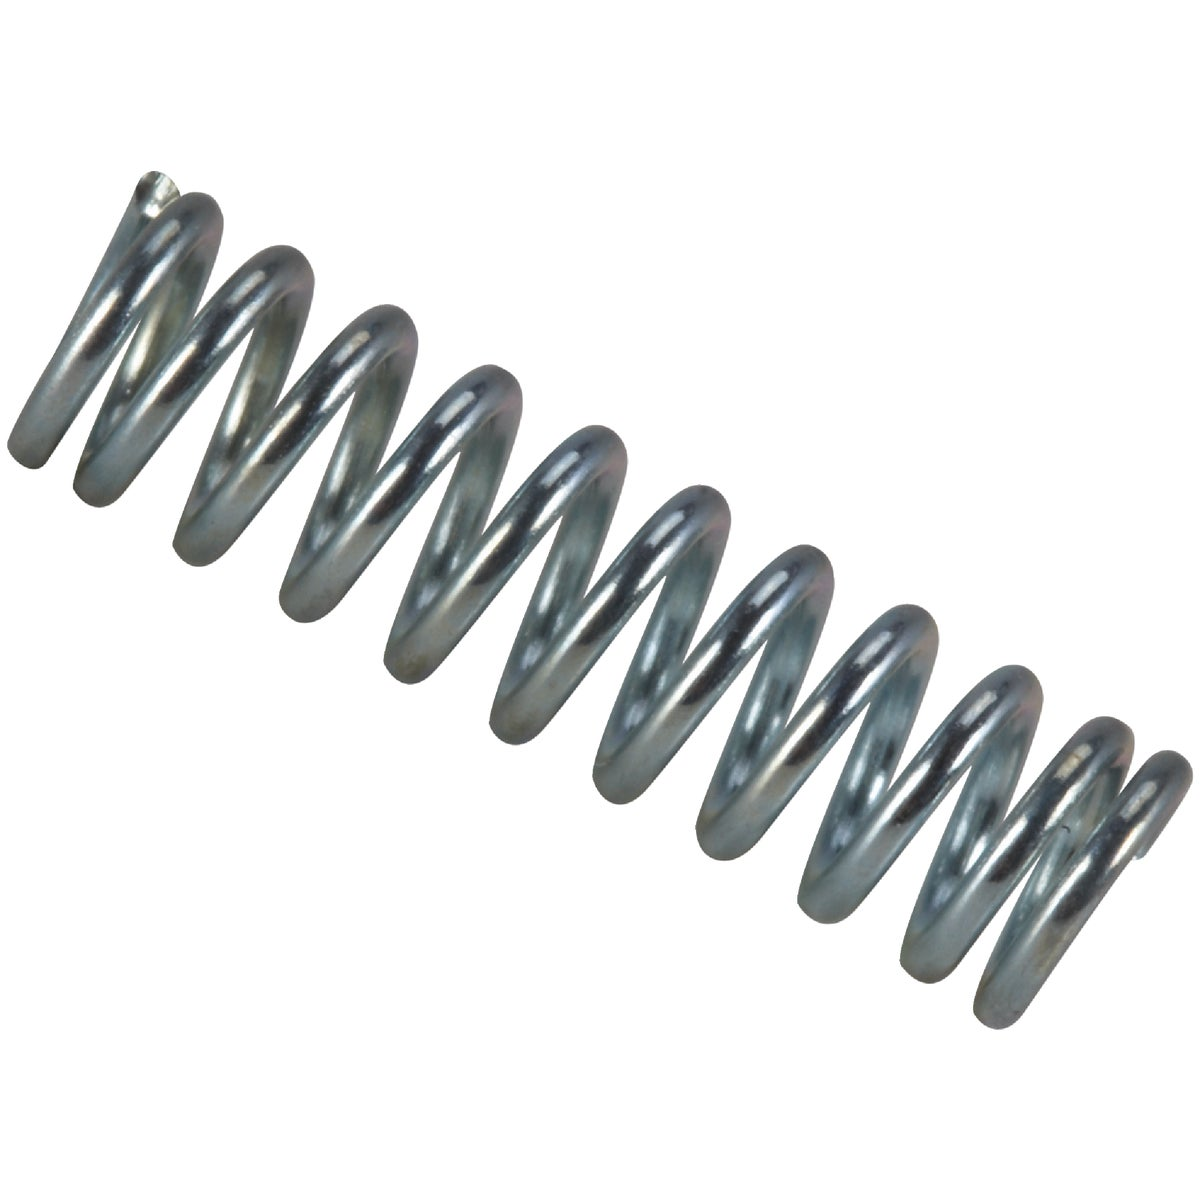 COMPRESSION SPRING - C-838 by Century Spring Corp